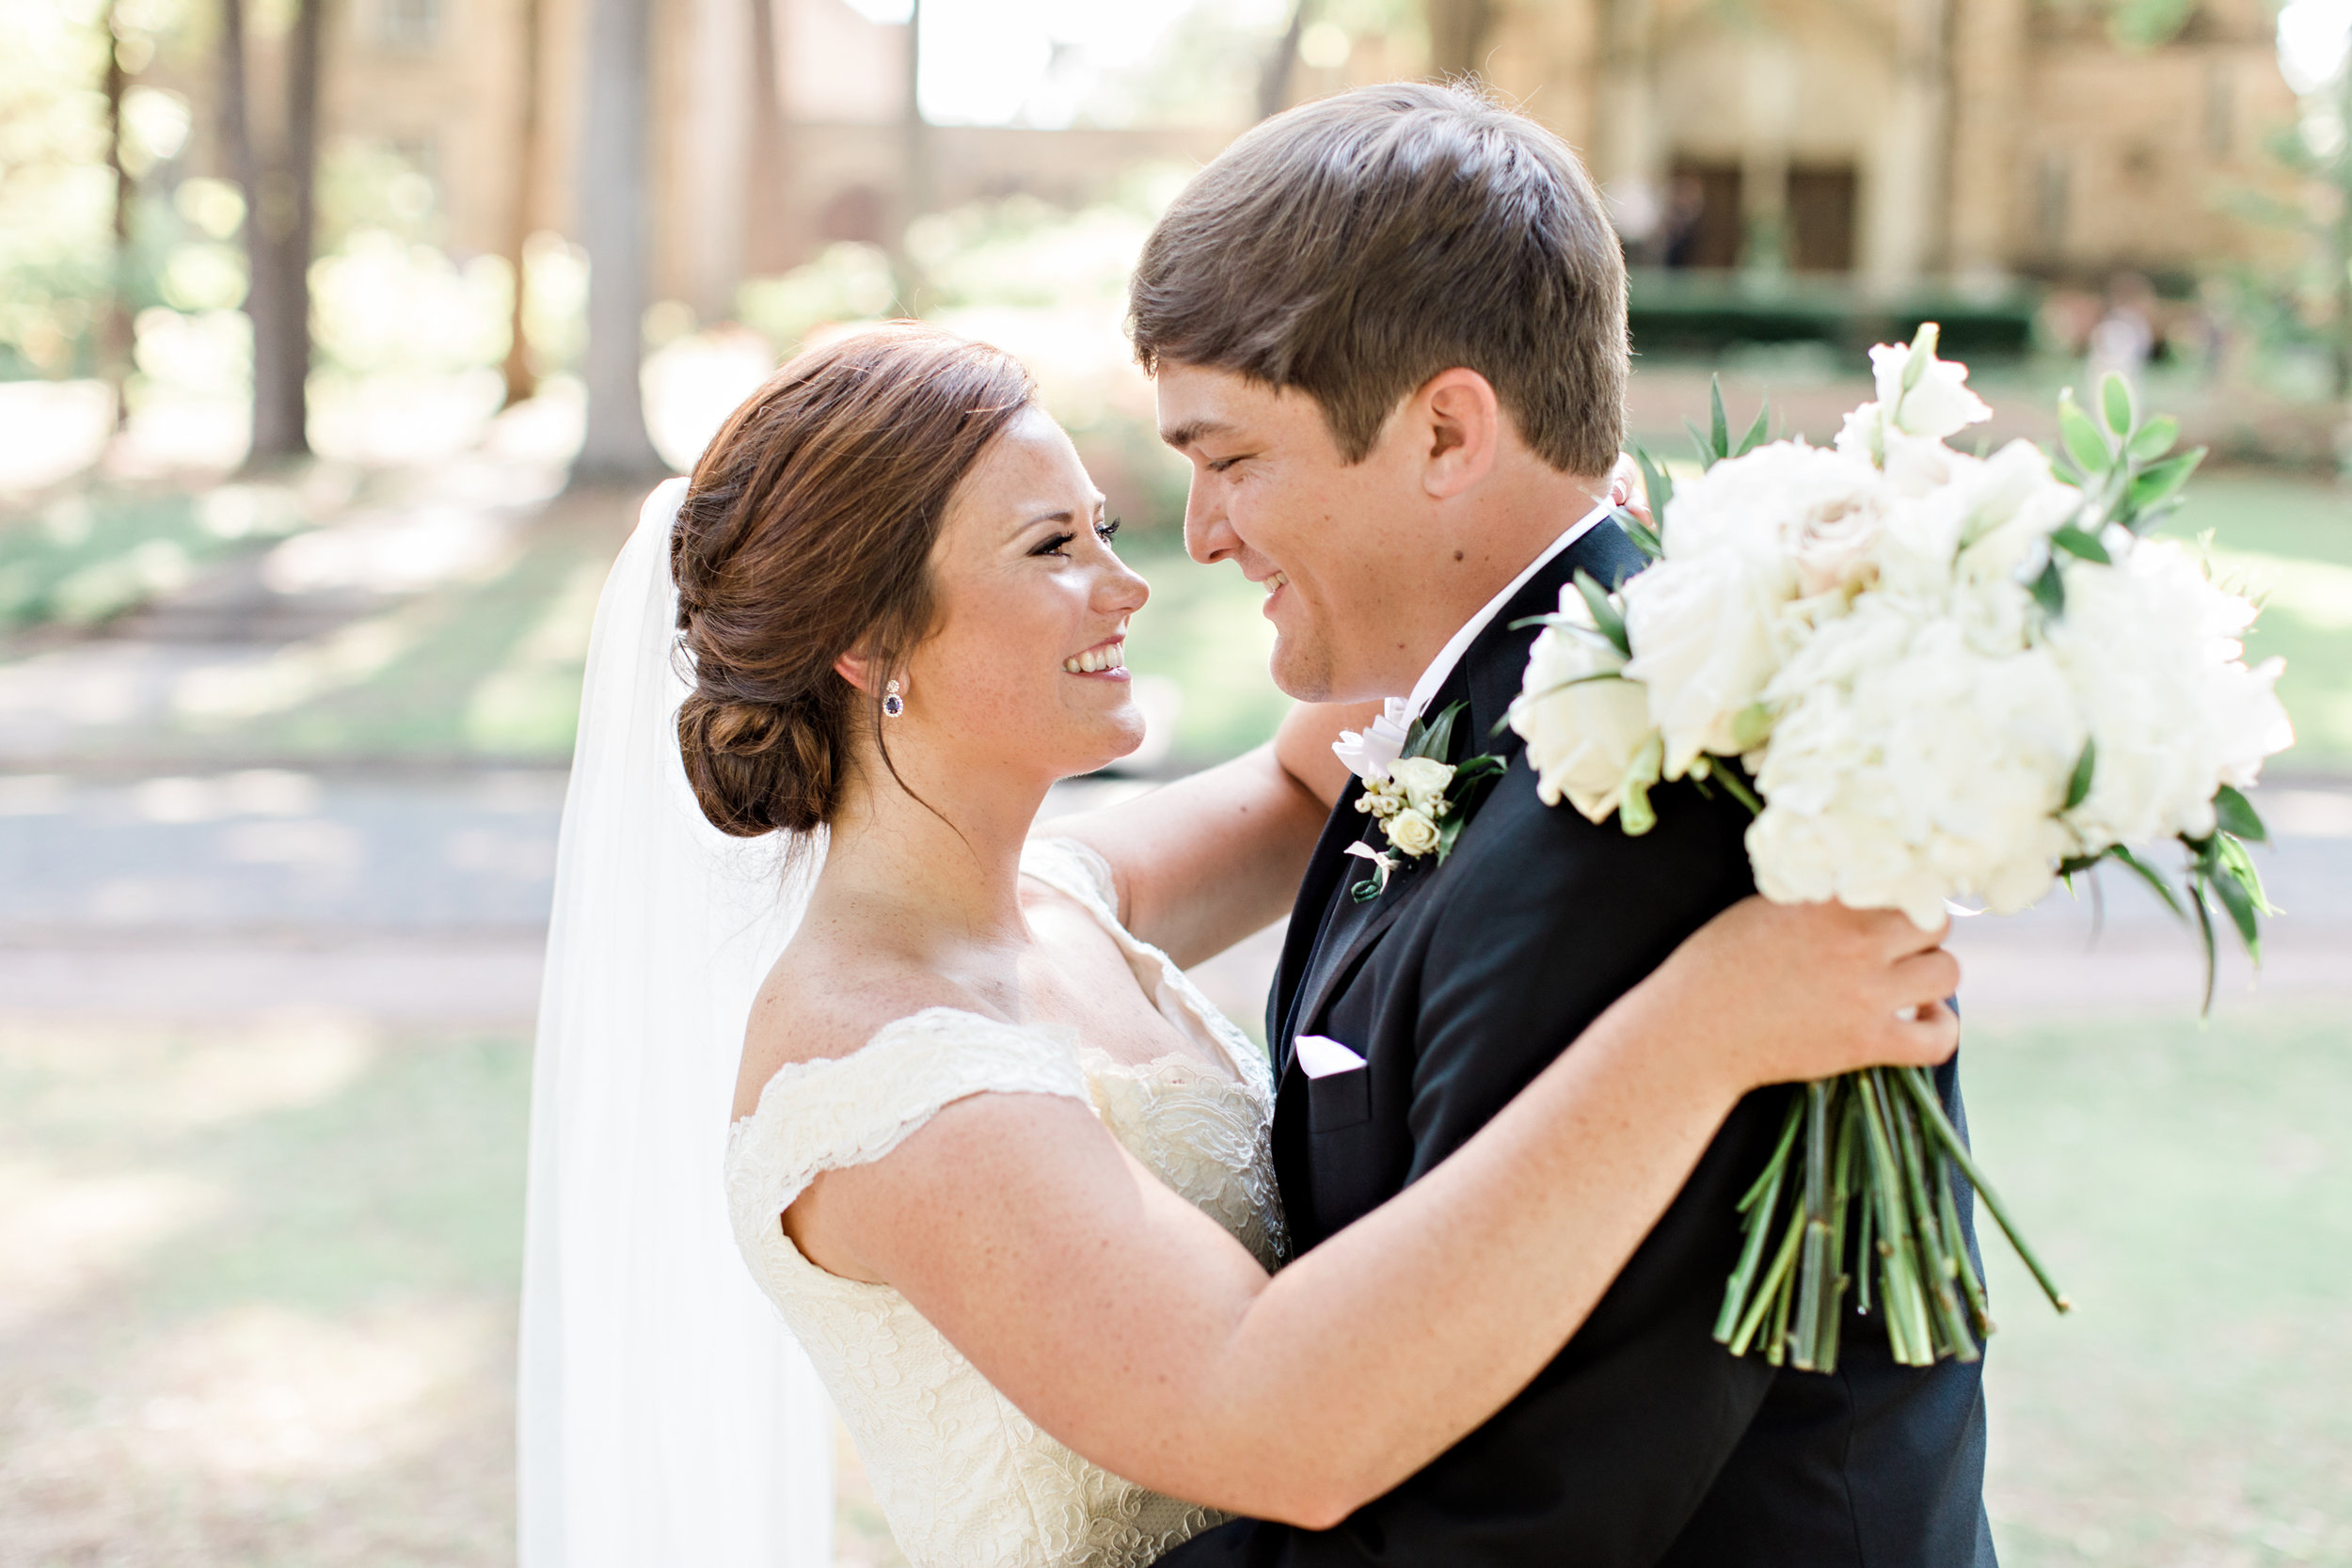 Alabama-Wedding-Photographers-Nick-Drollette-Josie and Heath-128.jpg